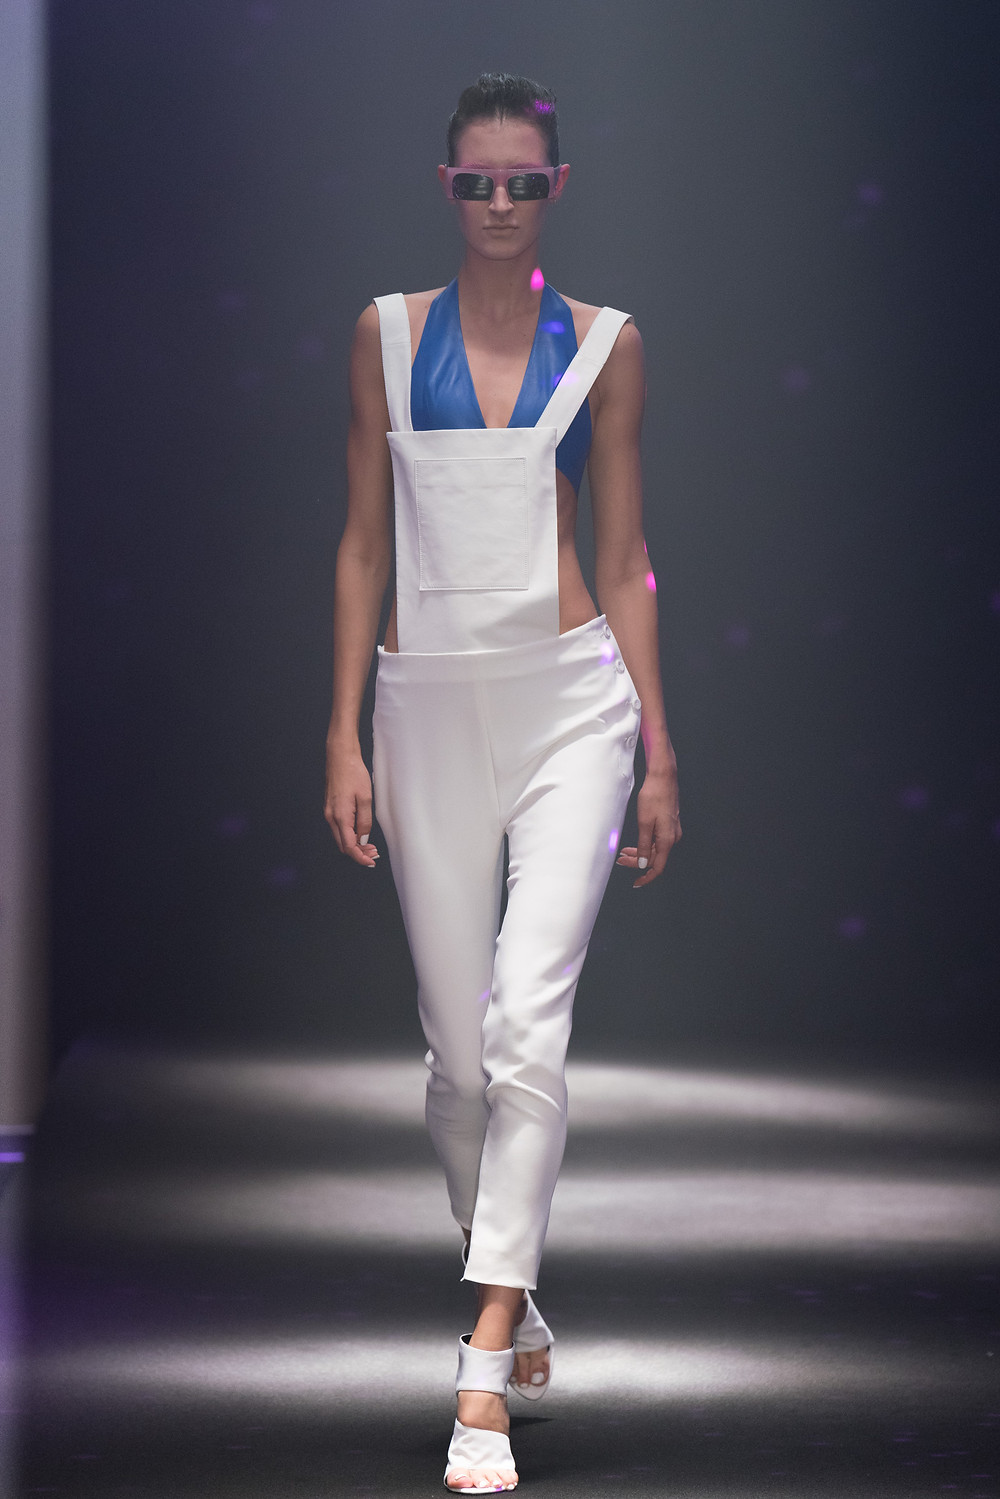 Guy Laroche Spring/Summer 2019 Collection Photographs by Antonio SO